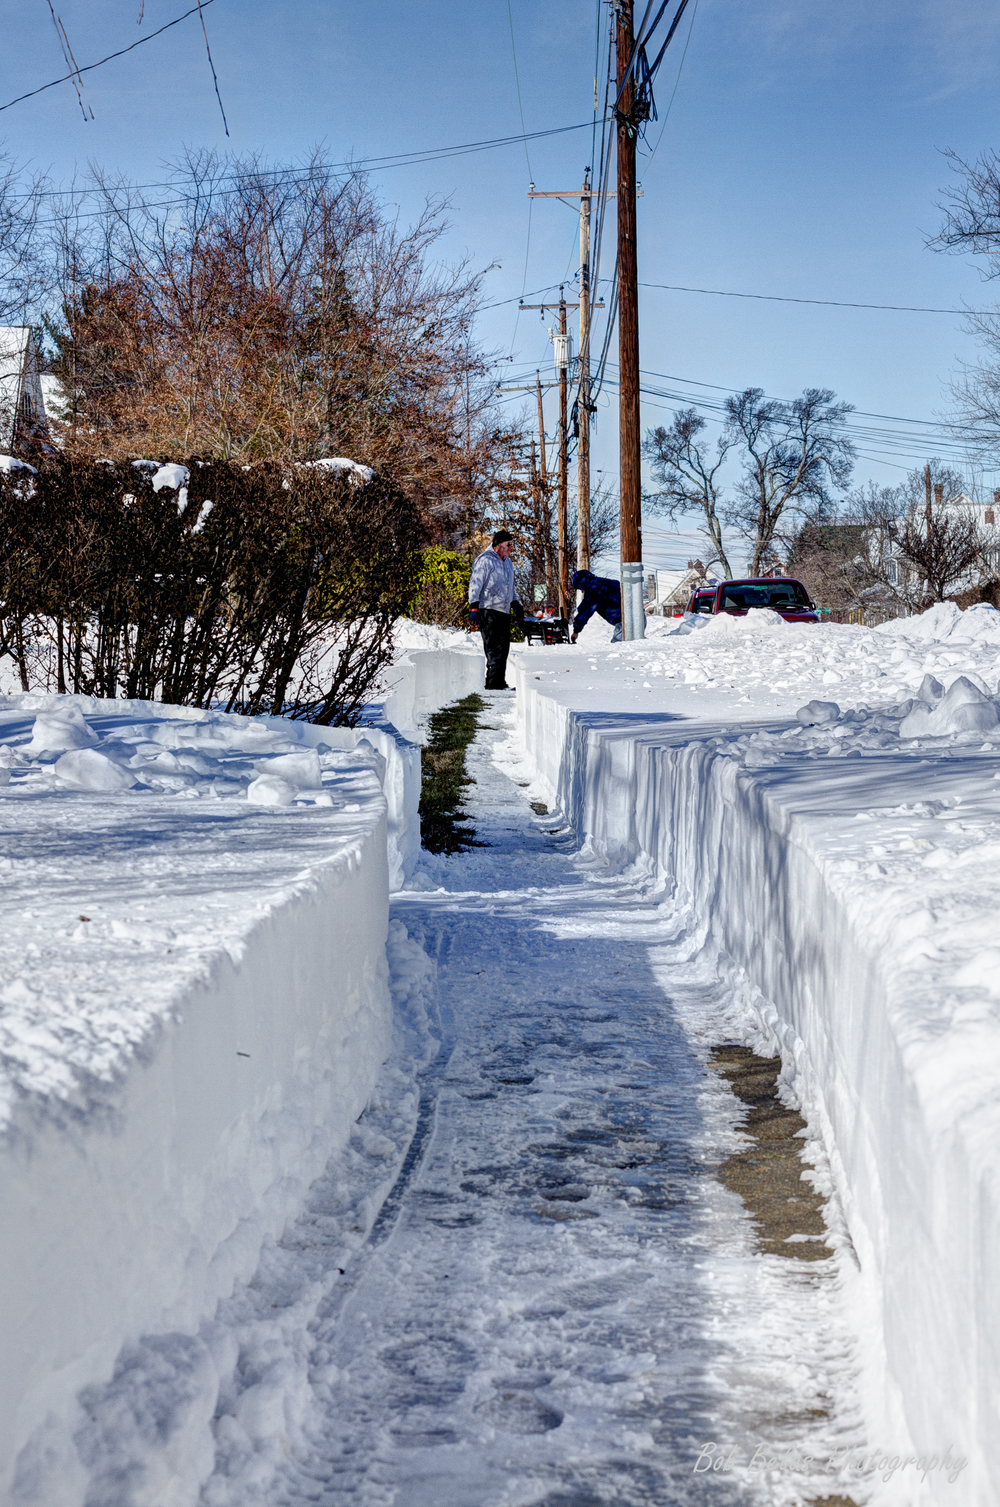 Sidewalk Snow Drift.jpg